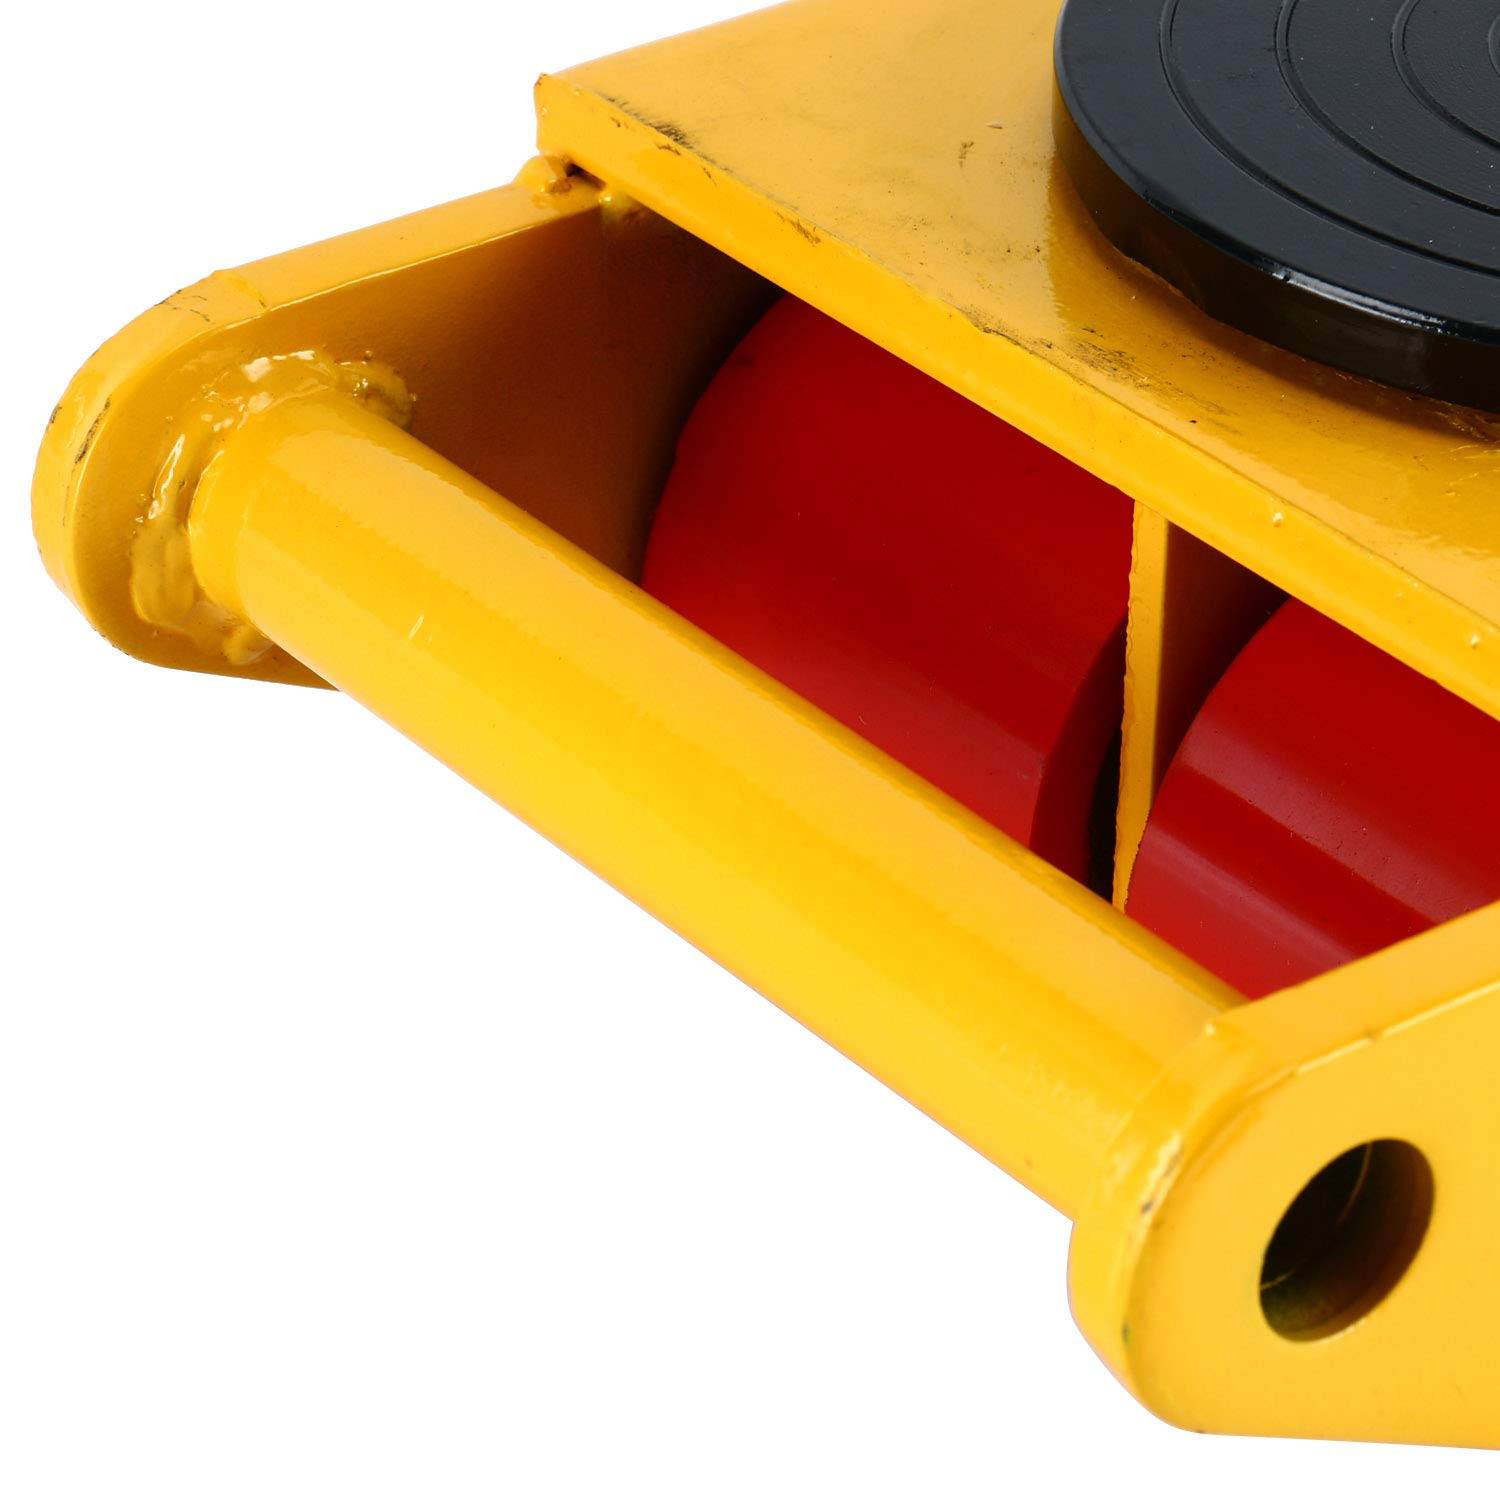 YaeTek Industrial Machinery Mover 13200 lbs 6 Tons Machinery Skate Dolly with 4 Rollers Cap 360 Degree Rotation (Yellow) by YAE TEK (Image #5)